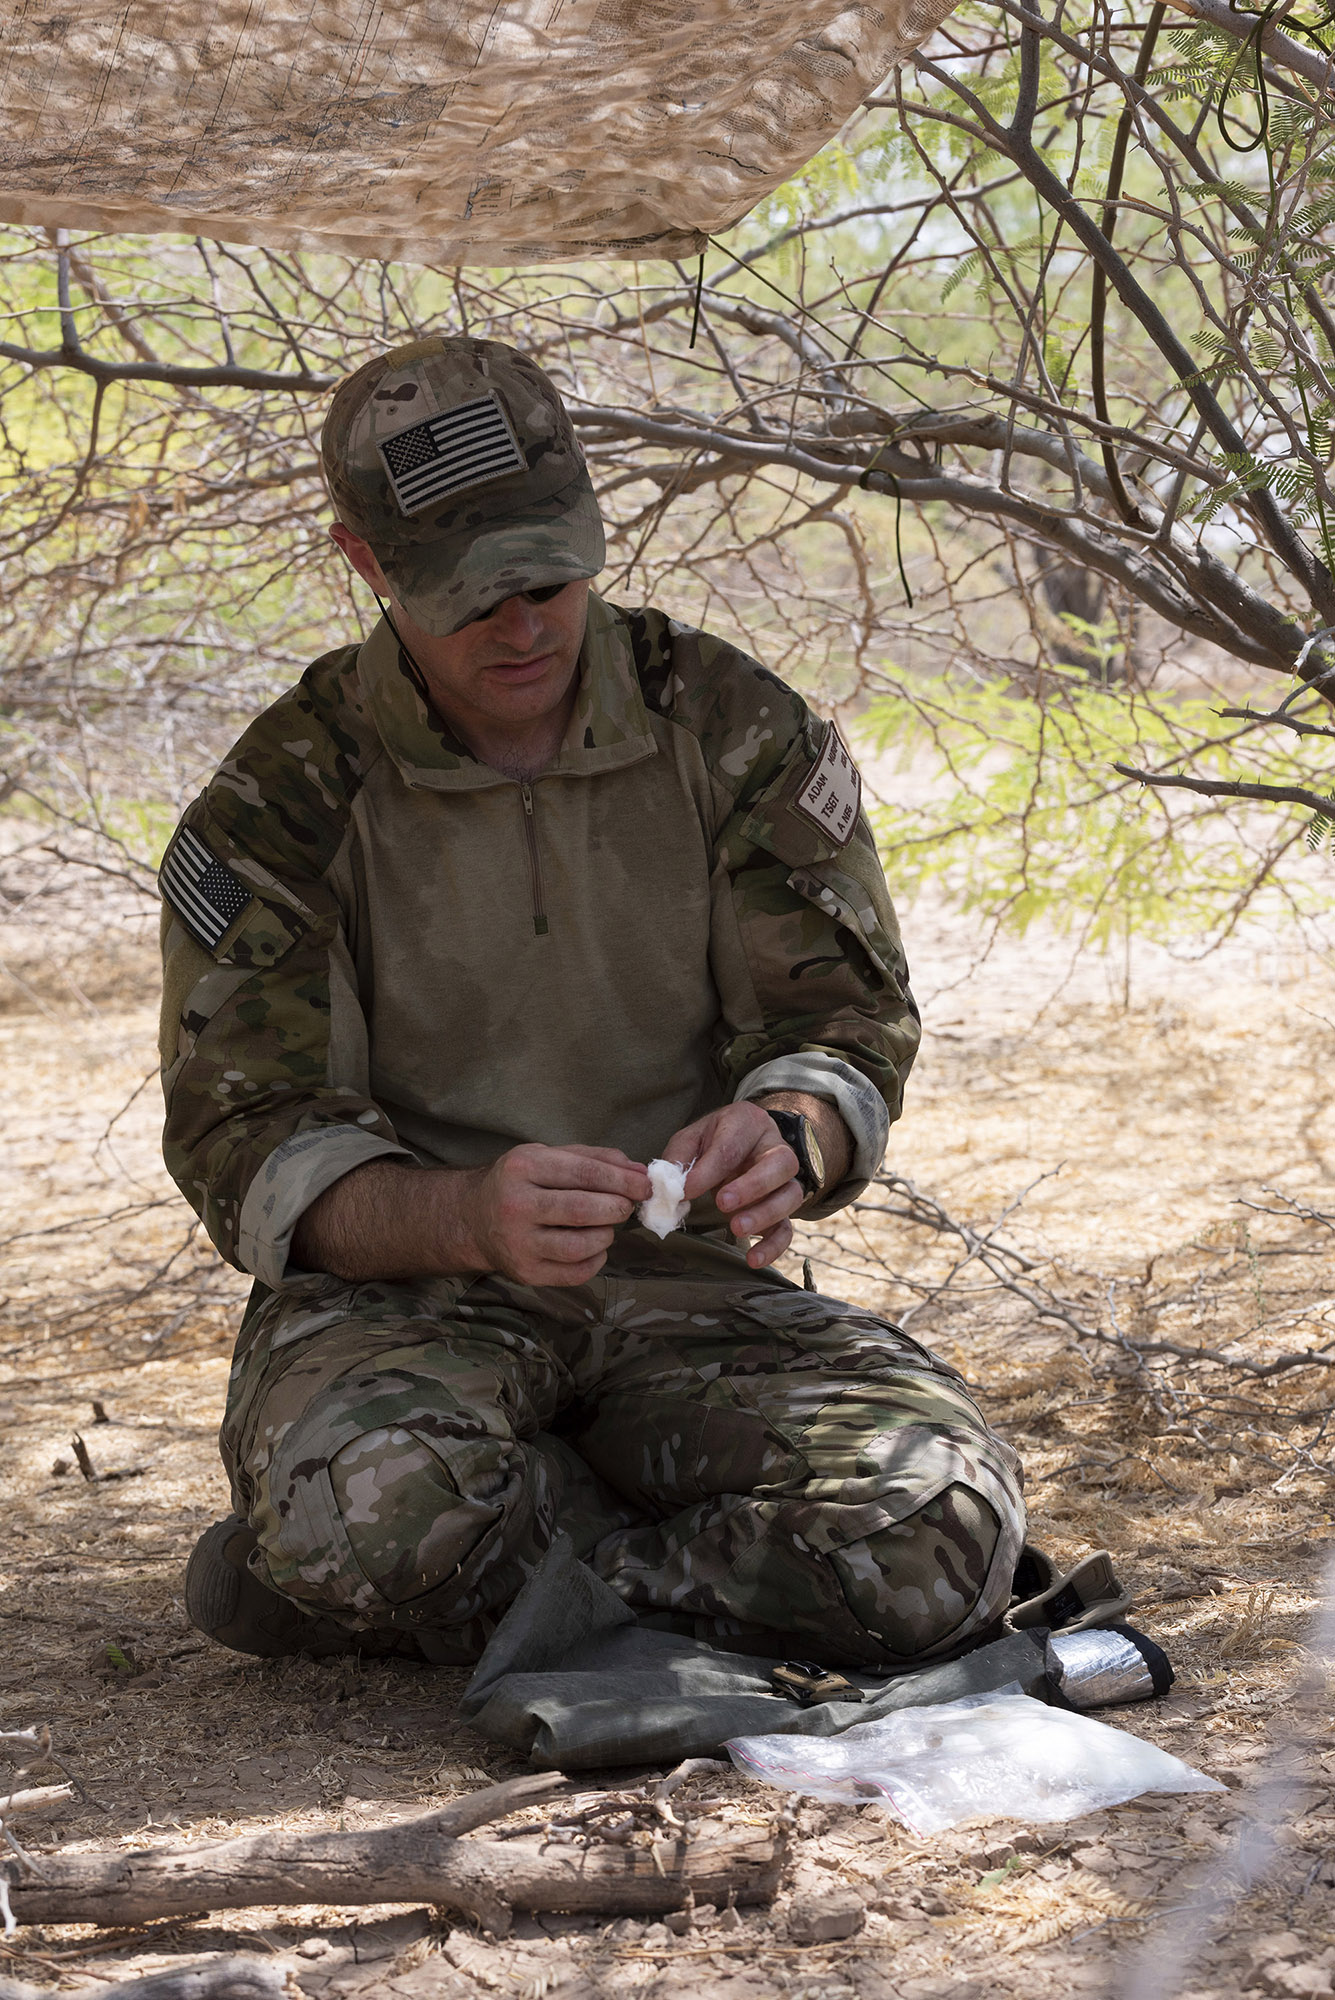 U.S. Air Force Tech. Sgt. Adam Murphy, a survival, evasion, resistance and escape specialist assigned to Combined Joint Task Force-Horn of Africa, demonstrates how to start a fire during survival skills training on Camp Lemonnier, Djibouti, Oct. 13, 2018. During this training, Murphy gave instruction on various skills such as constructing a shelter, finding alternative water sources and signaling for rescue. (U.S. Air National Guard photo by Master Sgt. Sarah Mattison)